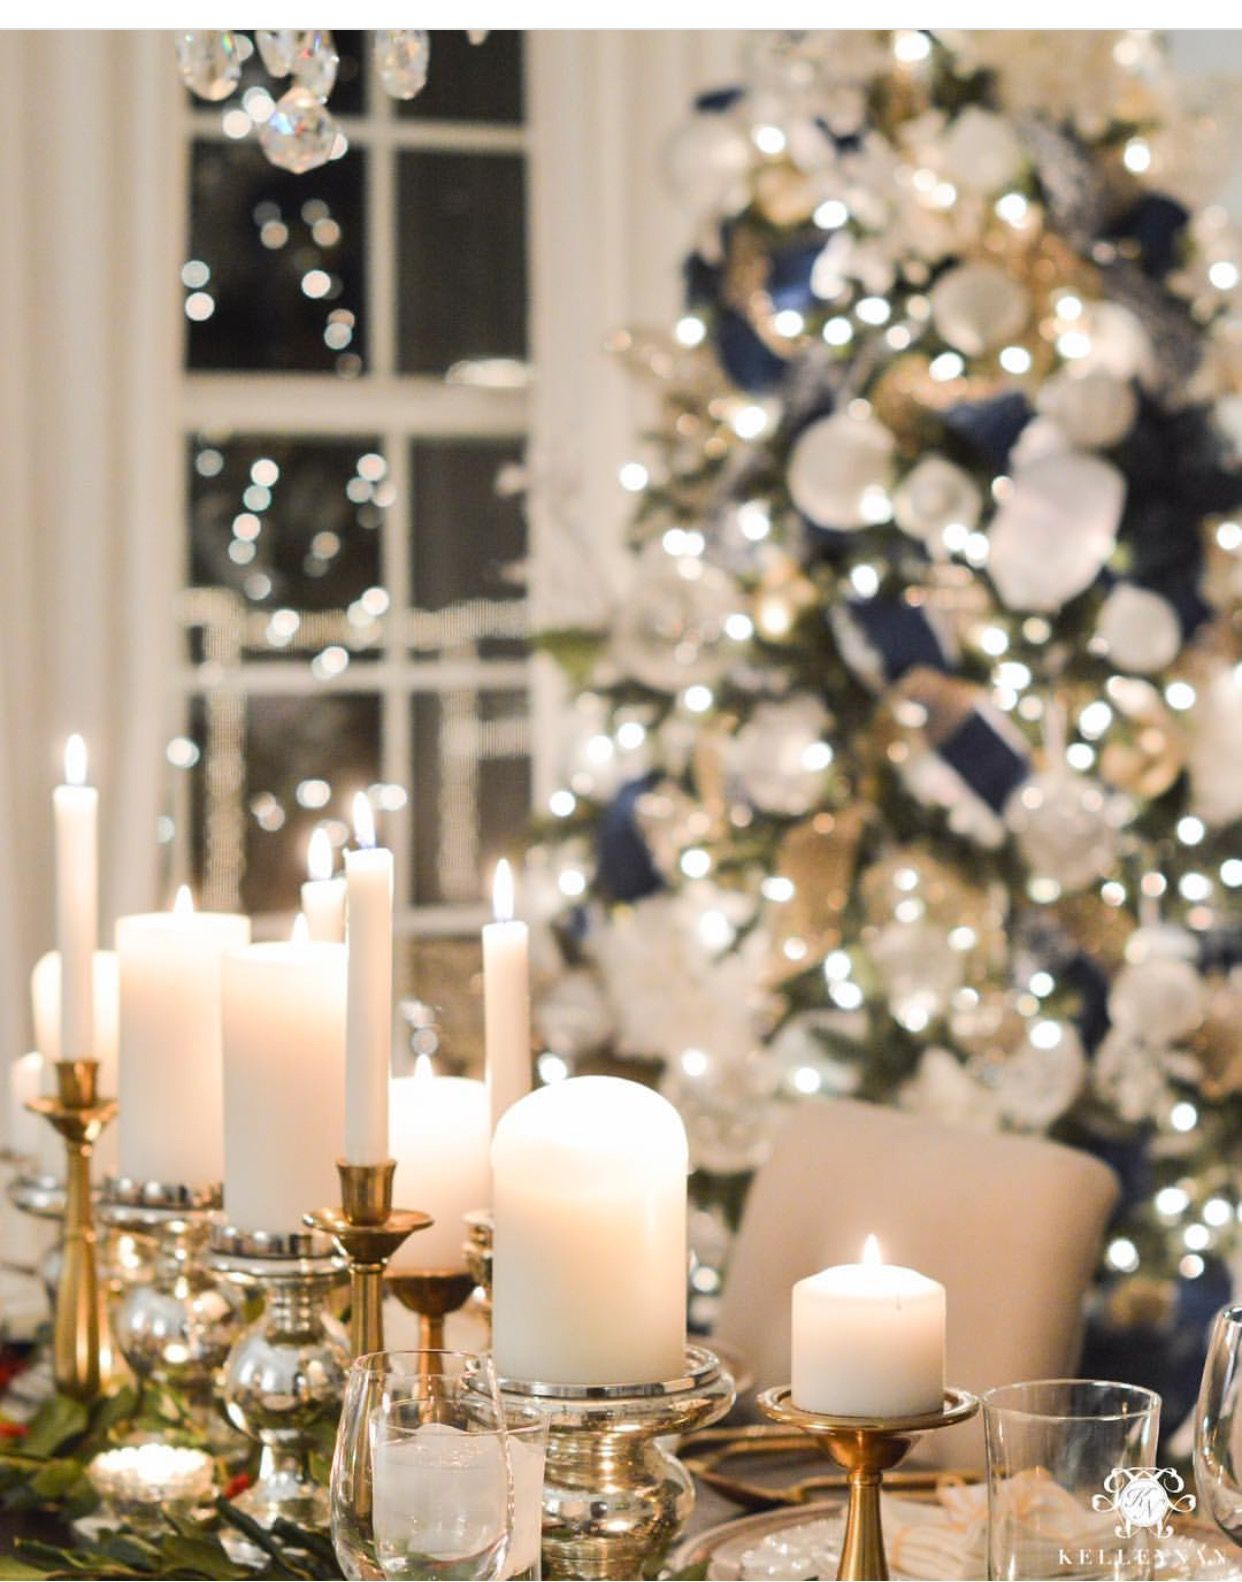 Pin By Sincerely Marie Designs On Christmas Christmas Dining Table Decor Elegant Christmas Centerpieces Christmas Table Decorations